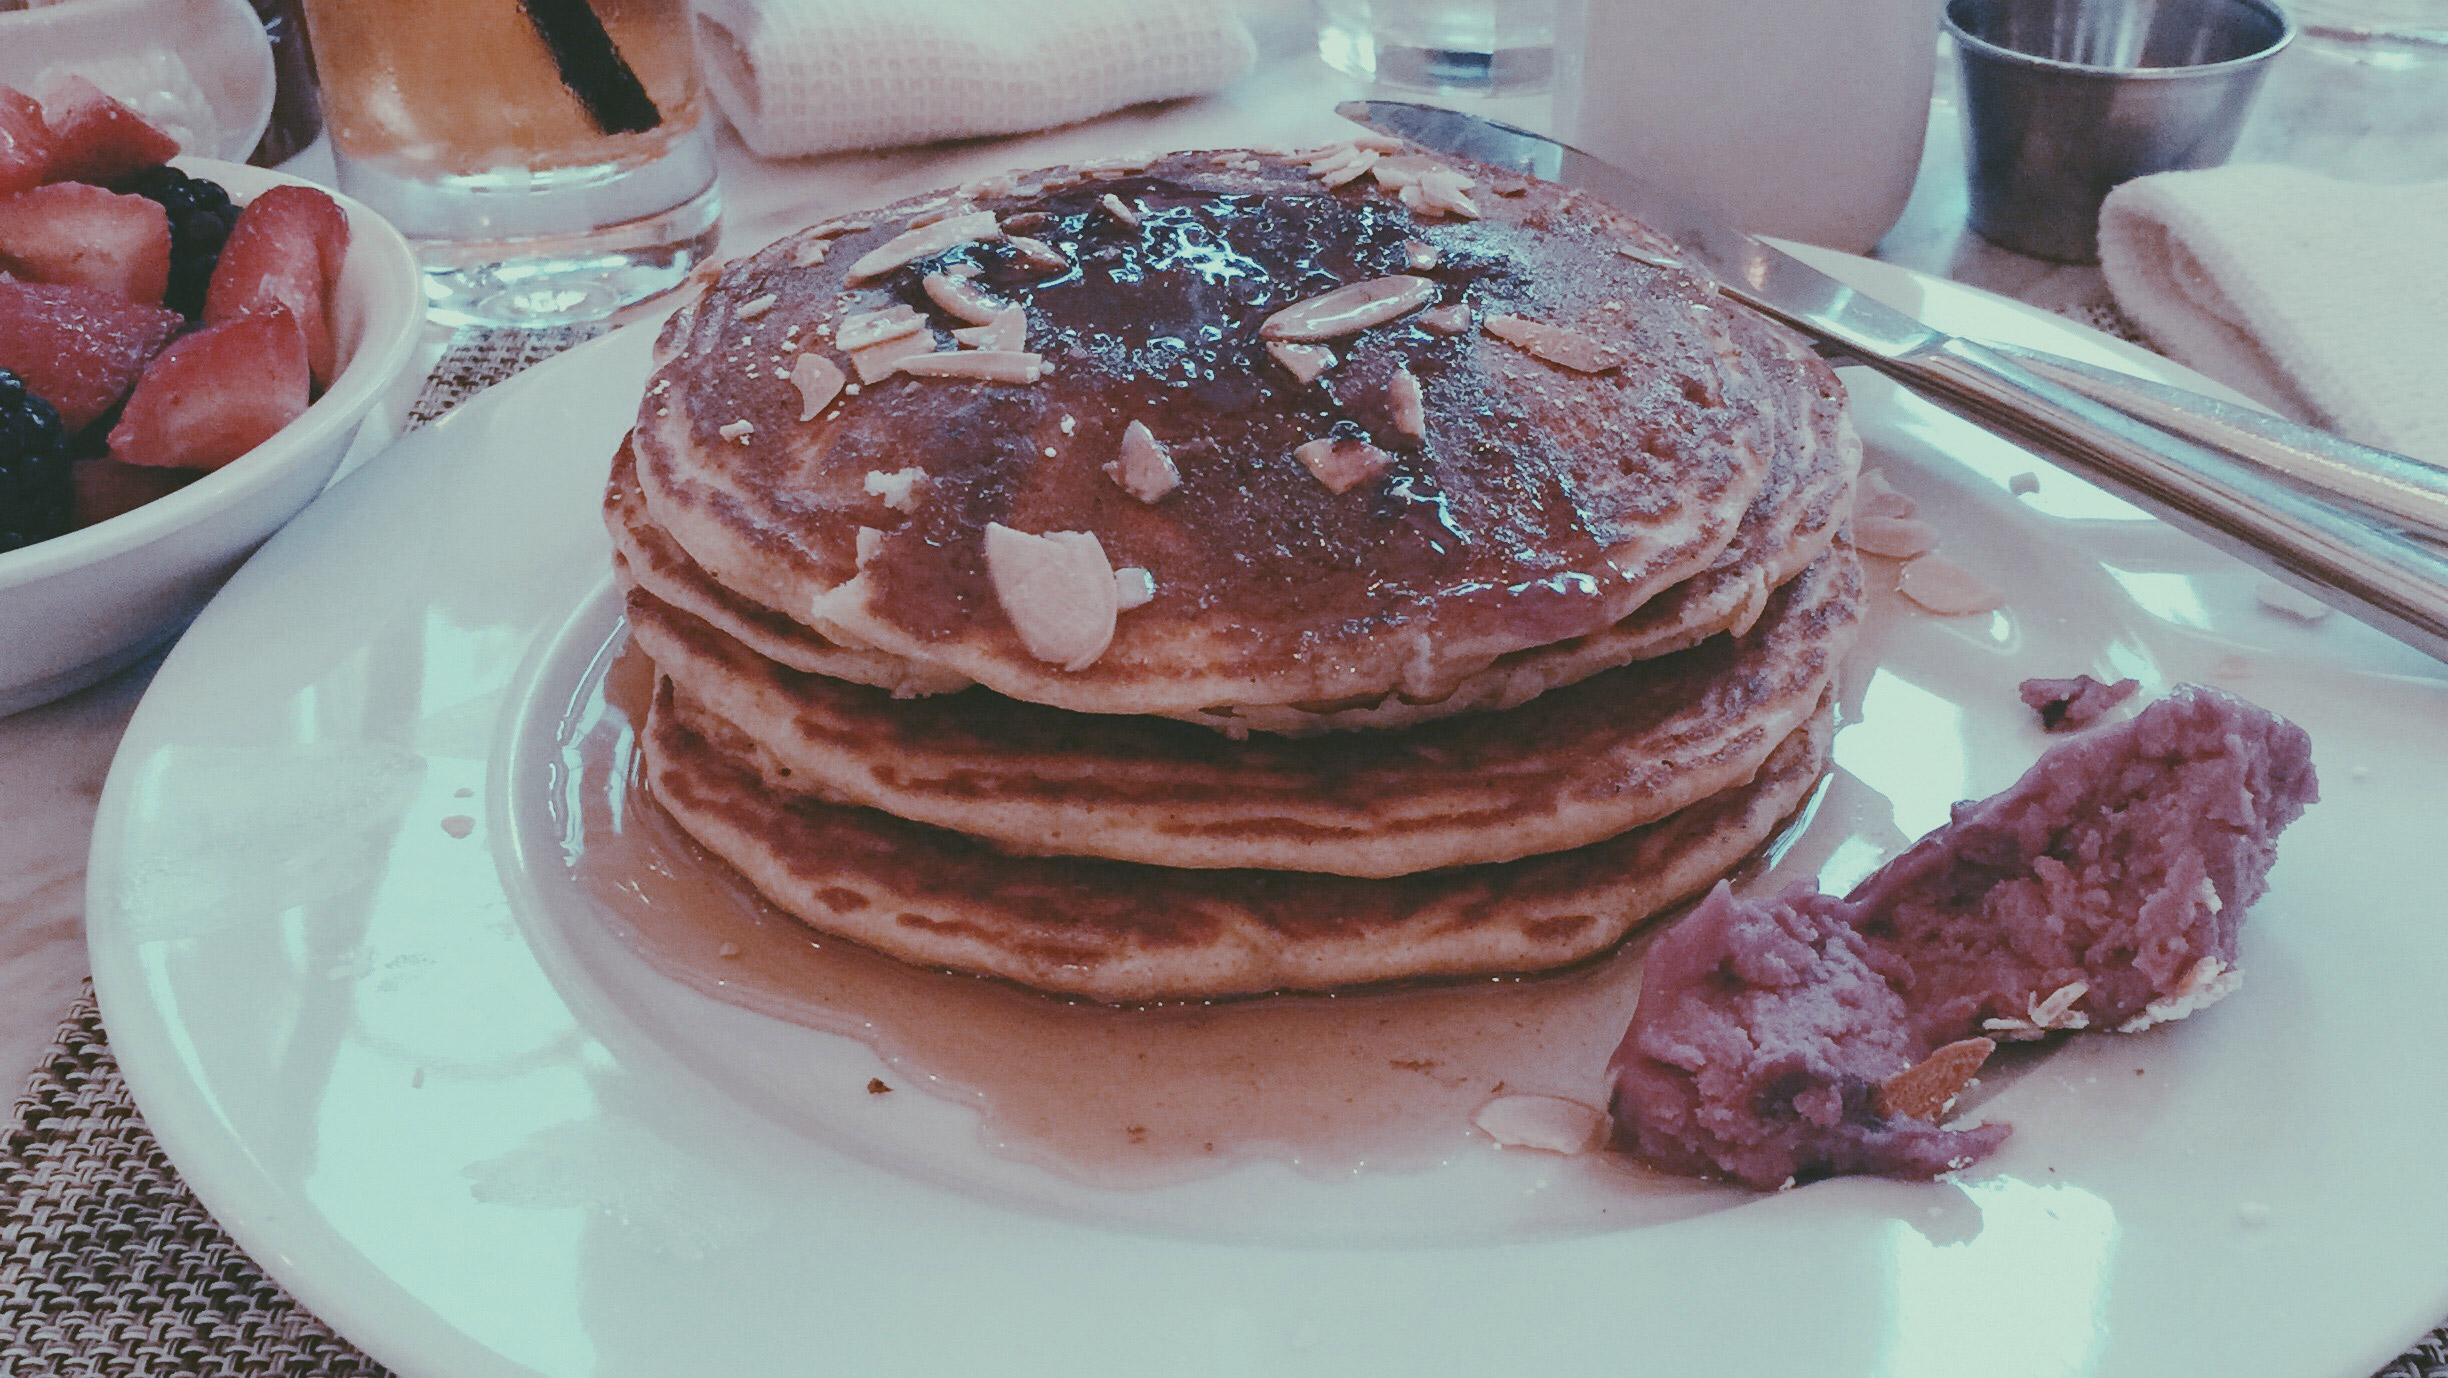 Ok, I'm allowed some pancakes, right?